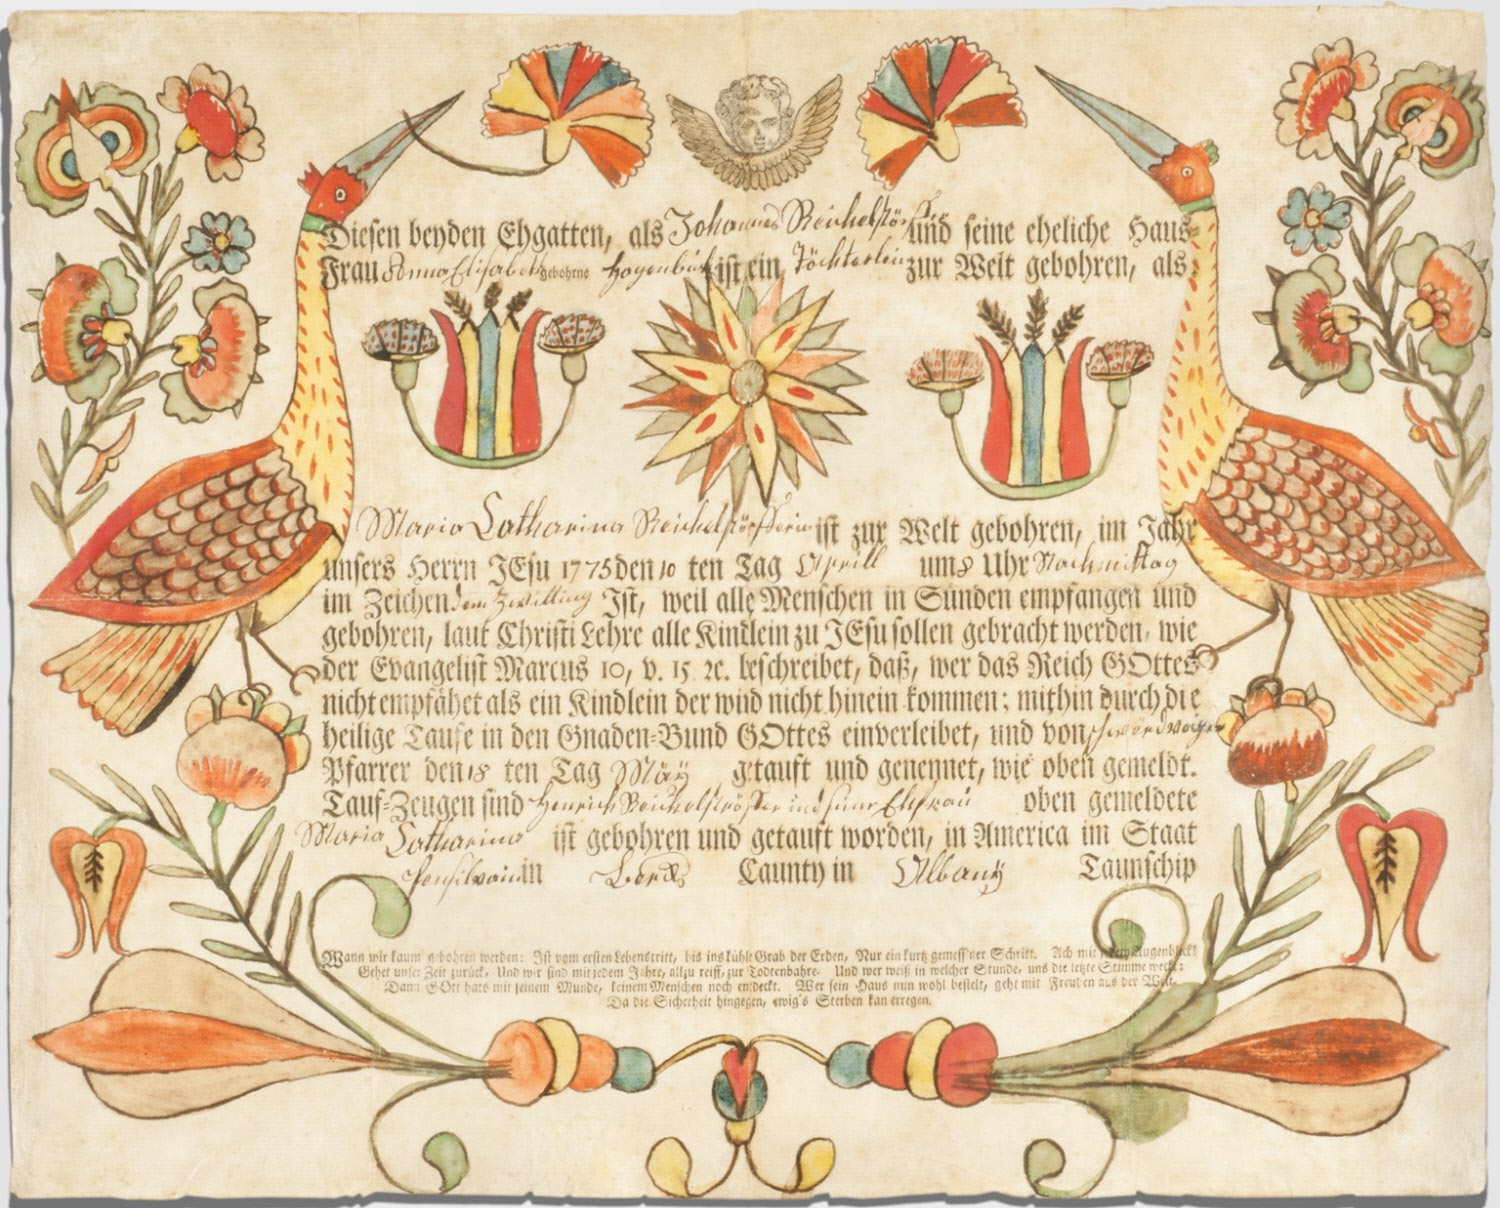 Birth and Baptismal Certificate for Maria Catharina Reichelstörffer (born April 10, 1775)